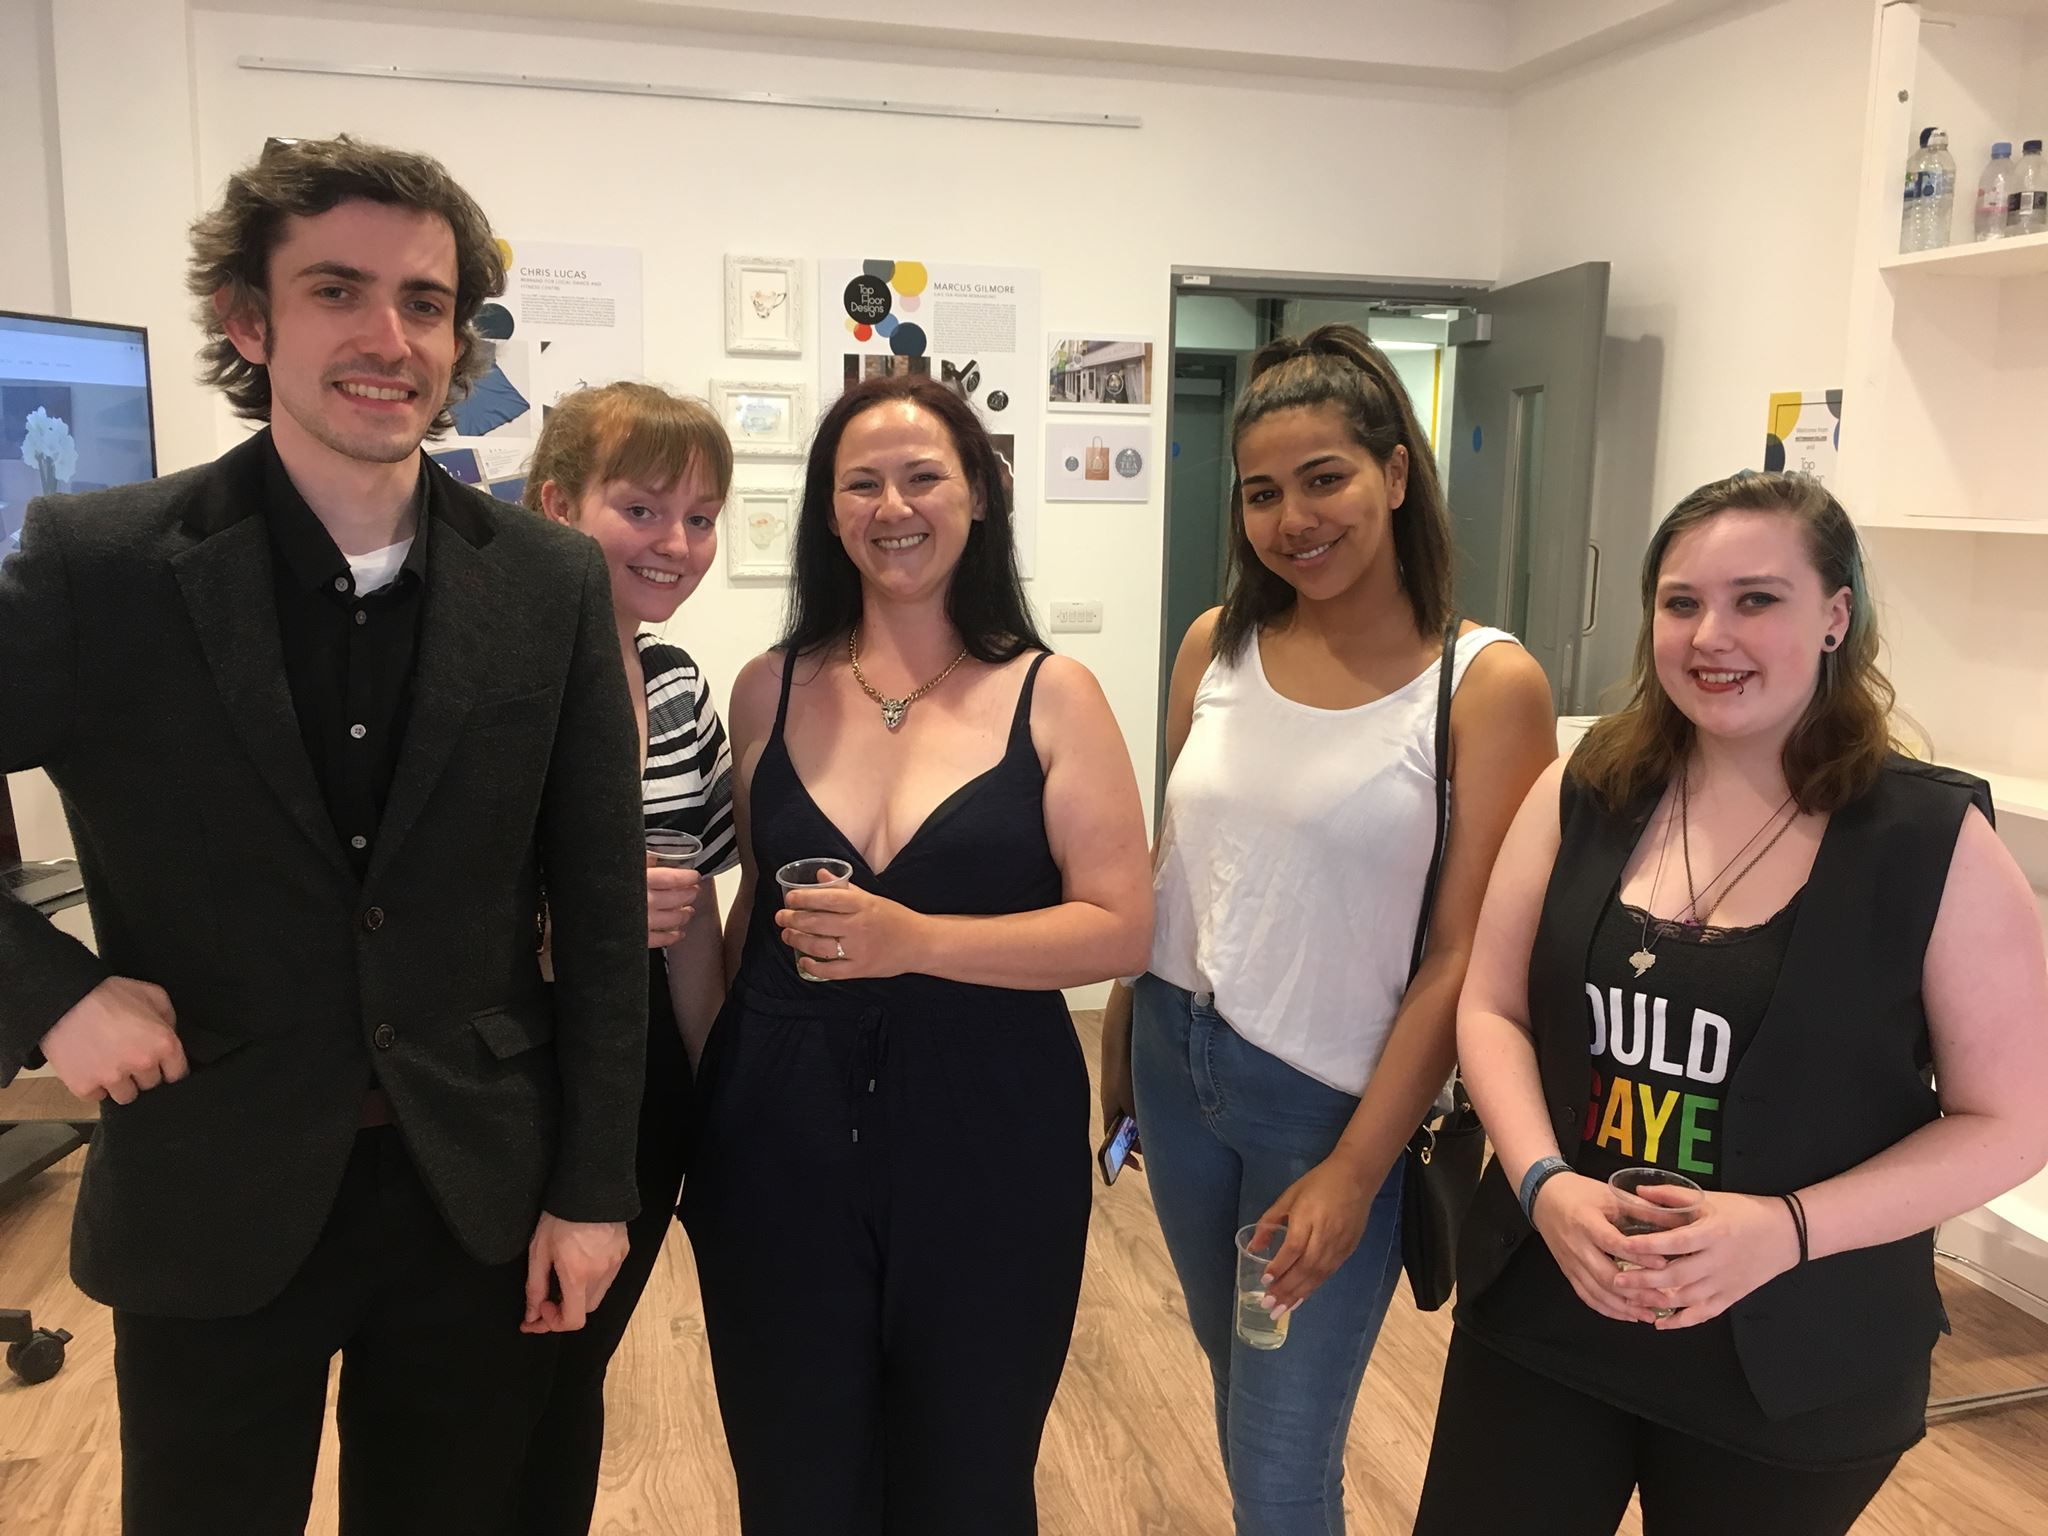 Me, Kirsten, Victoria, Imaani and Exza (part of TopFloorDesigns) at our preview night at Broadway Gallery last week.